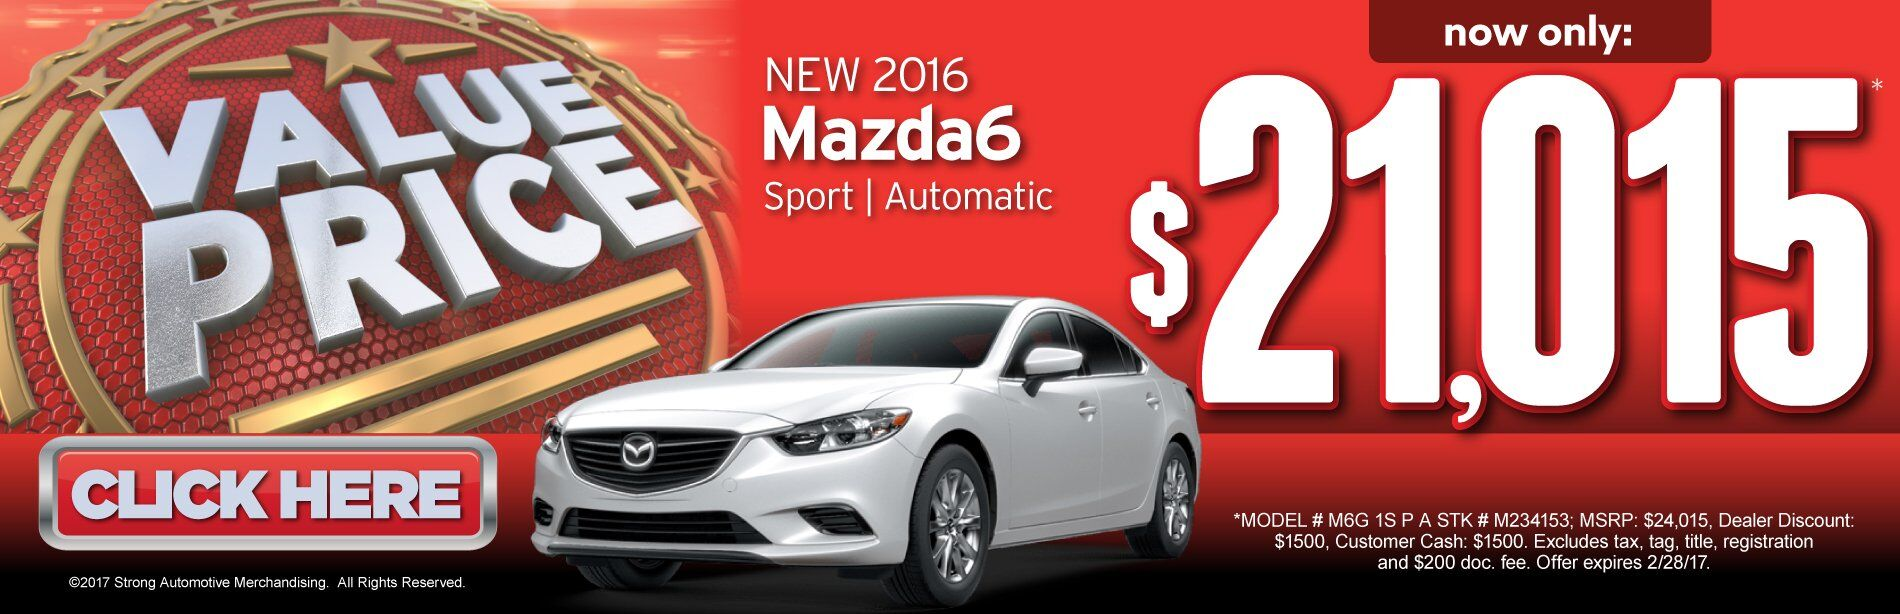 Value Price Mazda6 i Sport